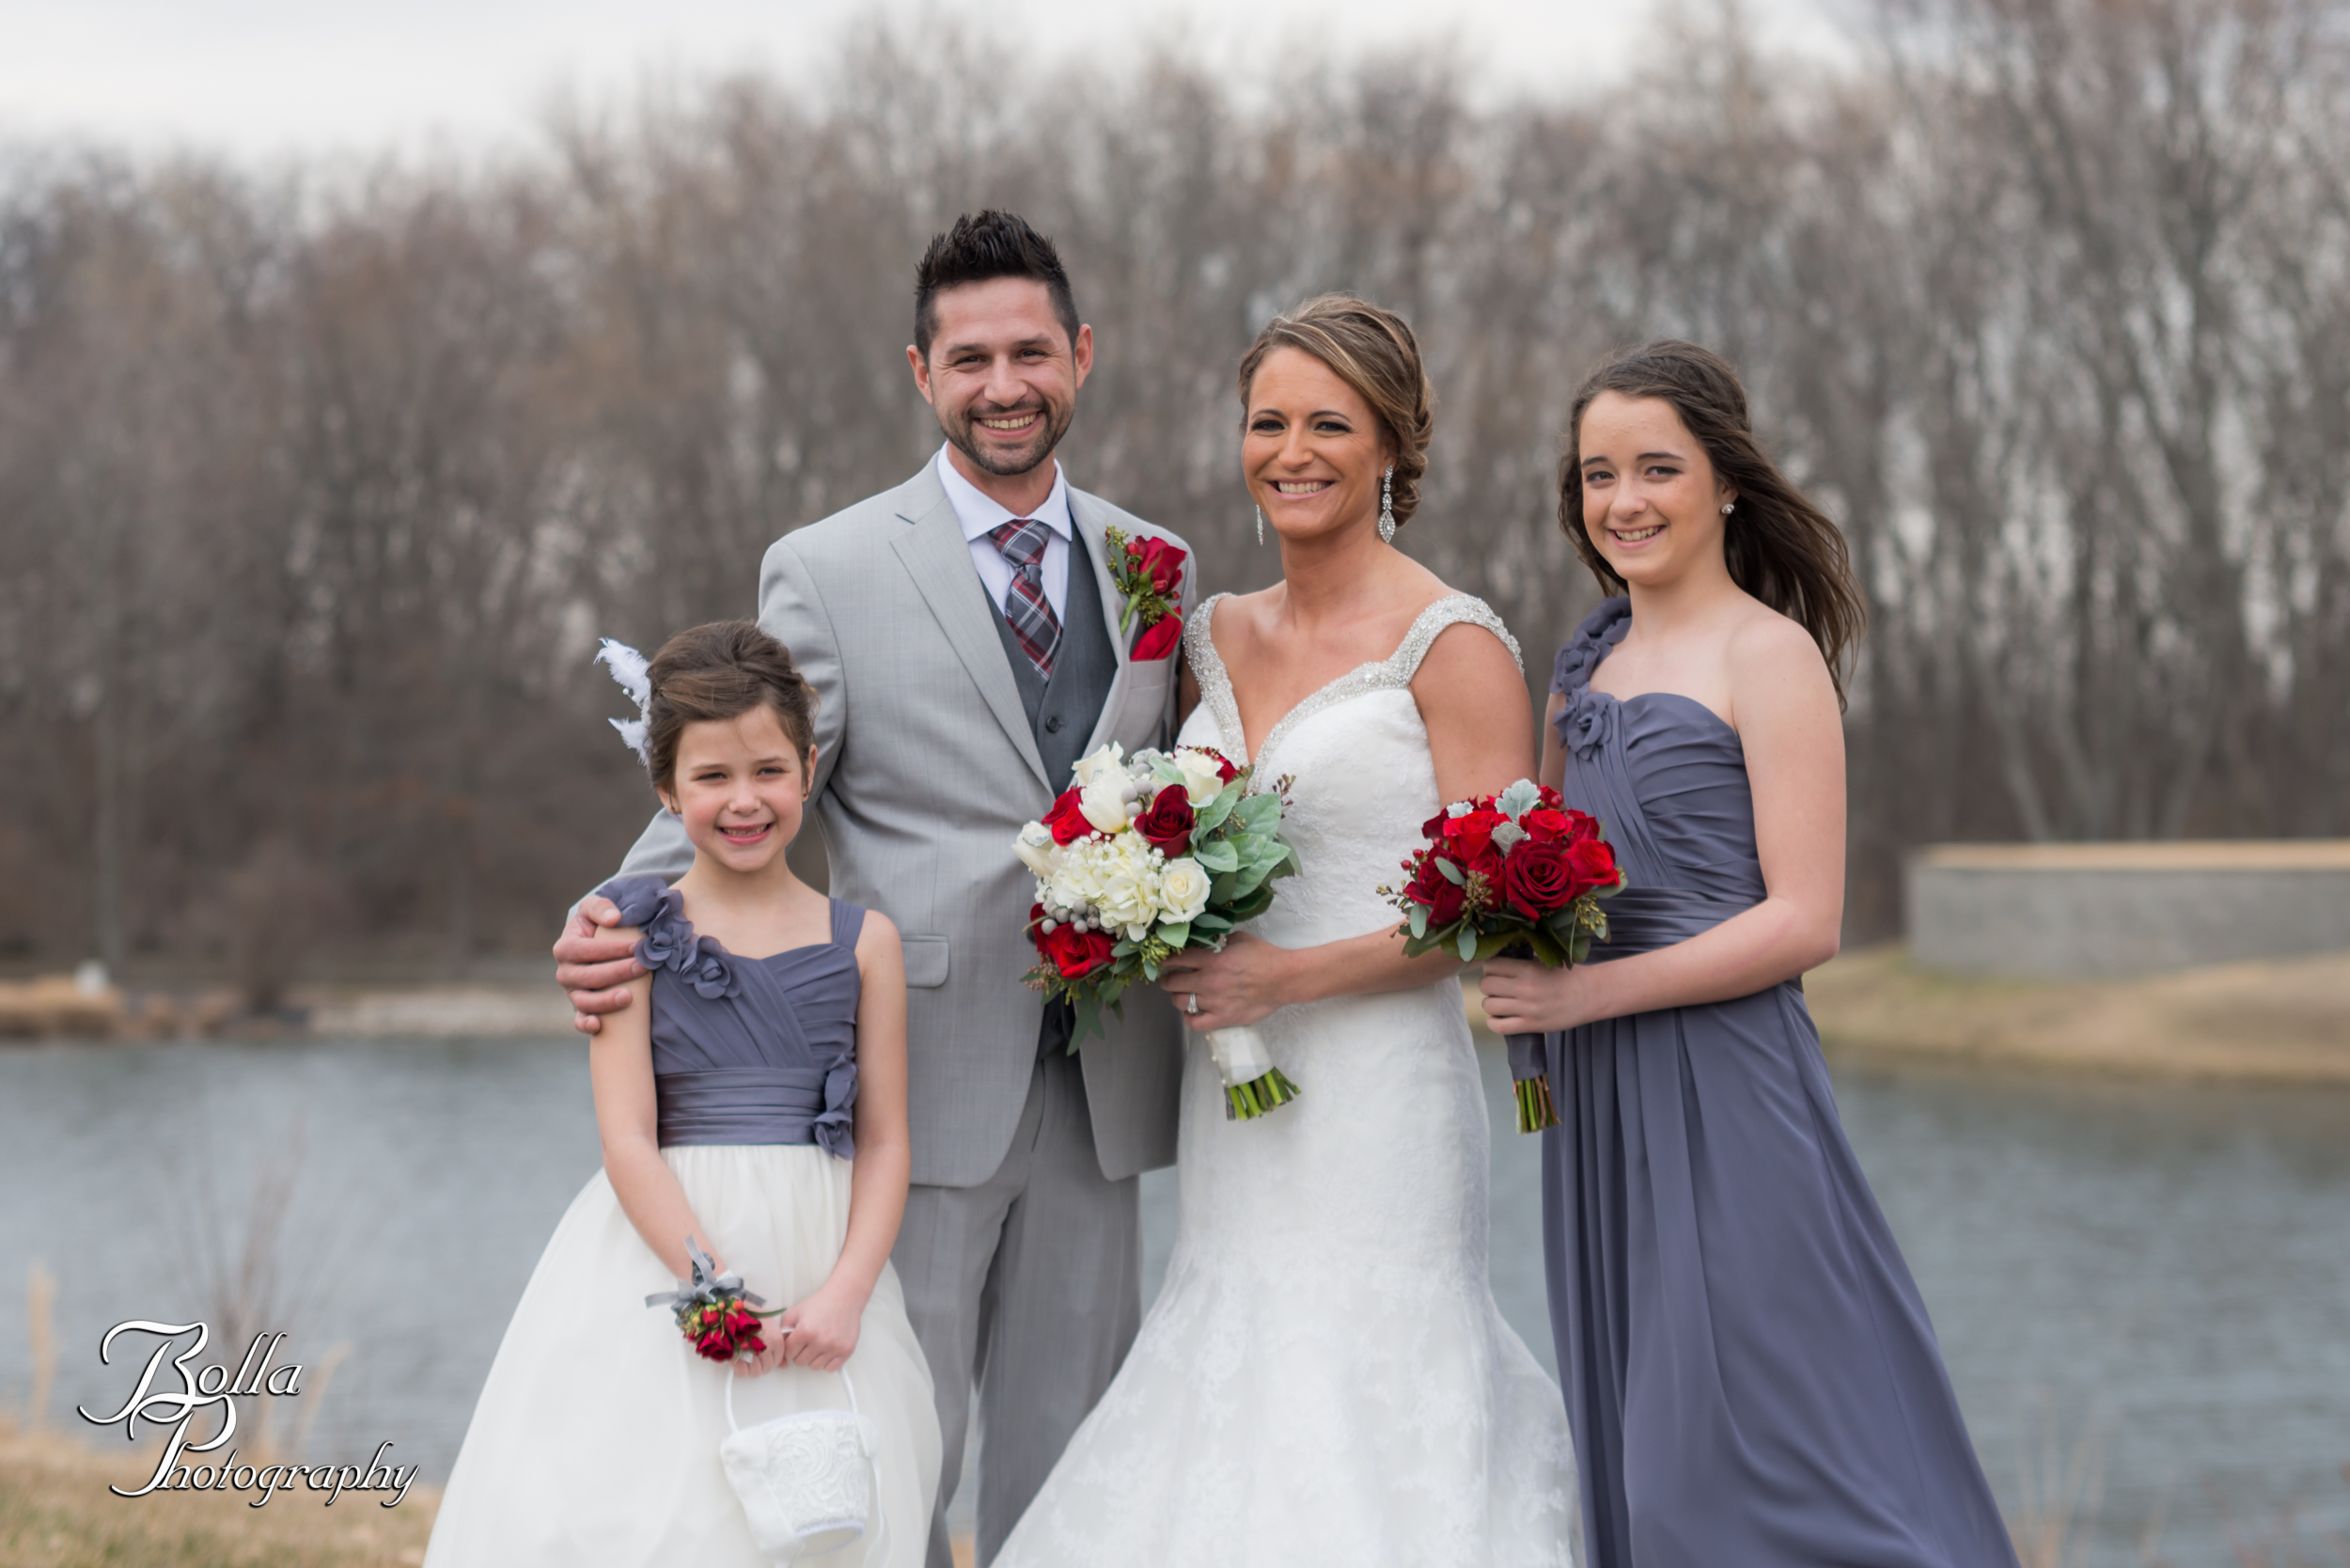 Bolla_photography_edwardsville_wedding_photographer_st_louis_weddings_highland_Allen_Warren_winter_red-0127.jpg